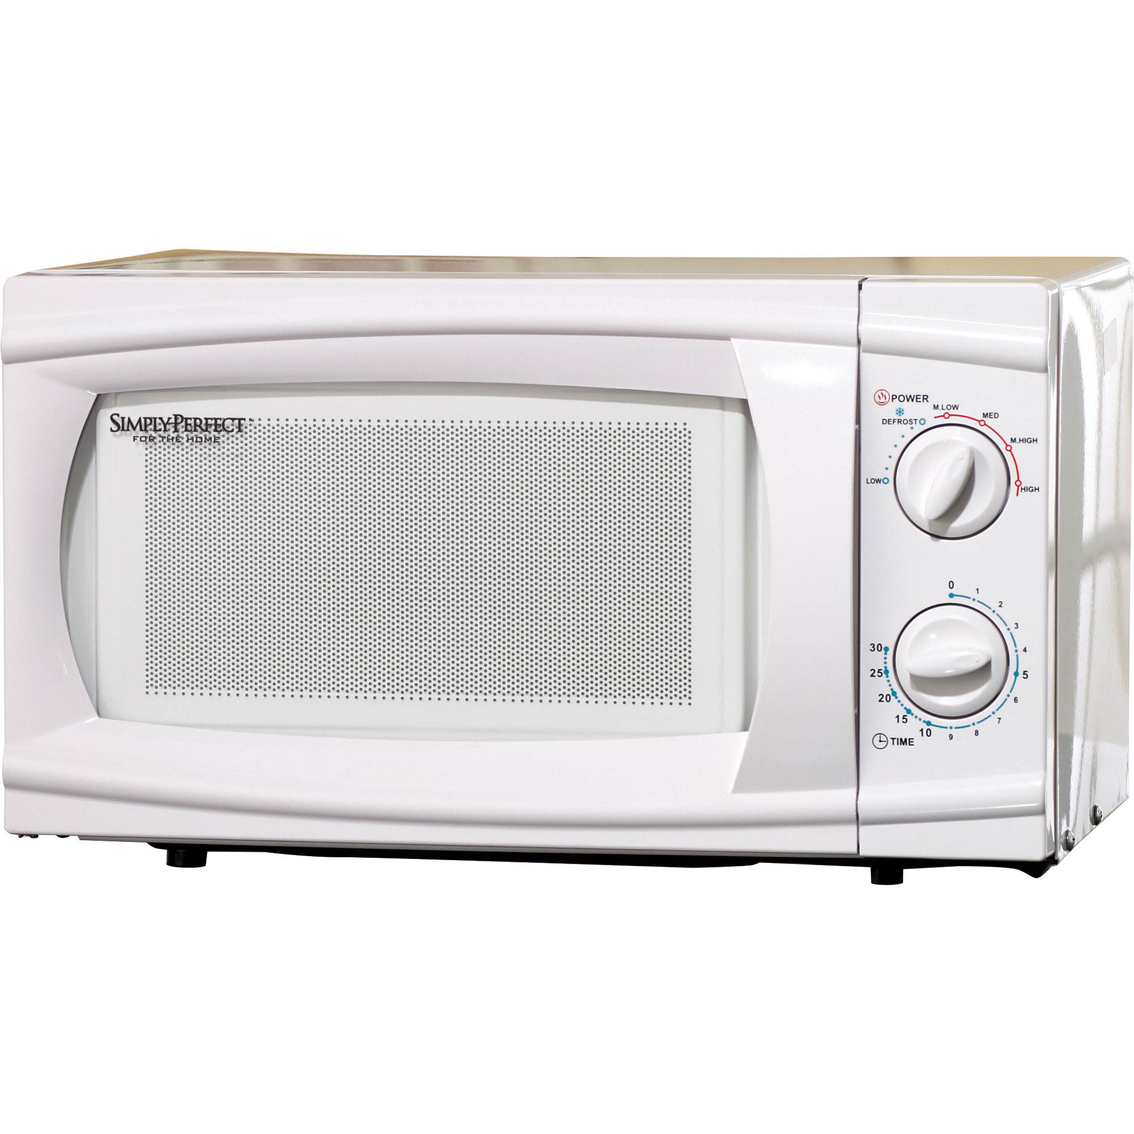 Simply Perfect Dial Microwave Small